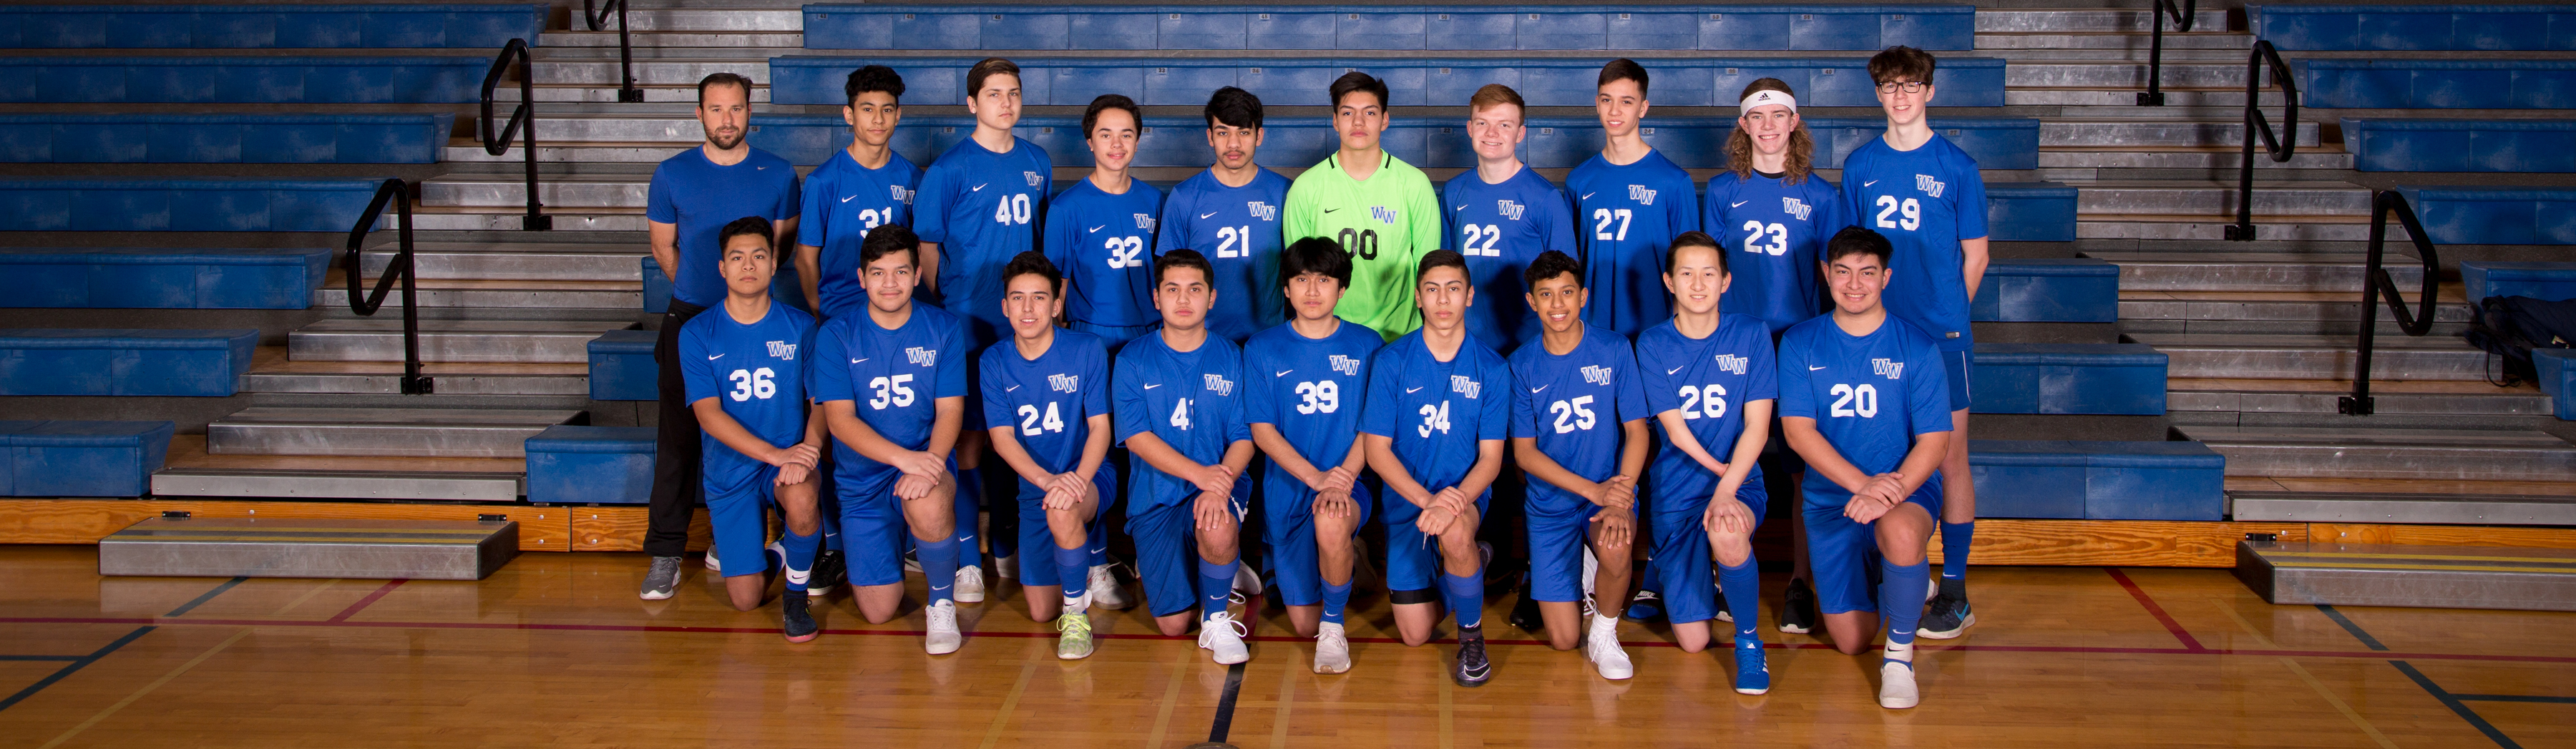 images/athletics/Soccer_Boys/2019_JV.jpg